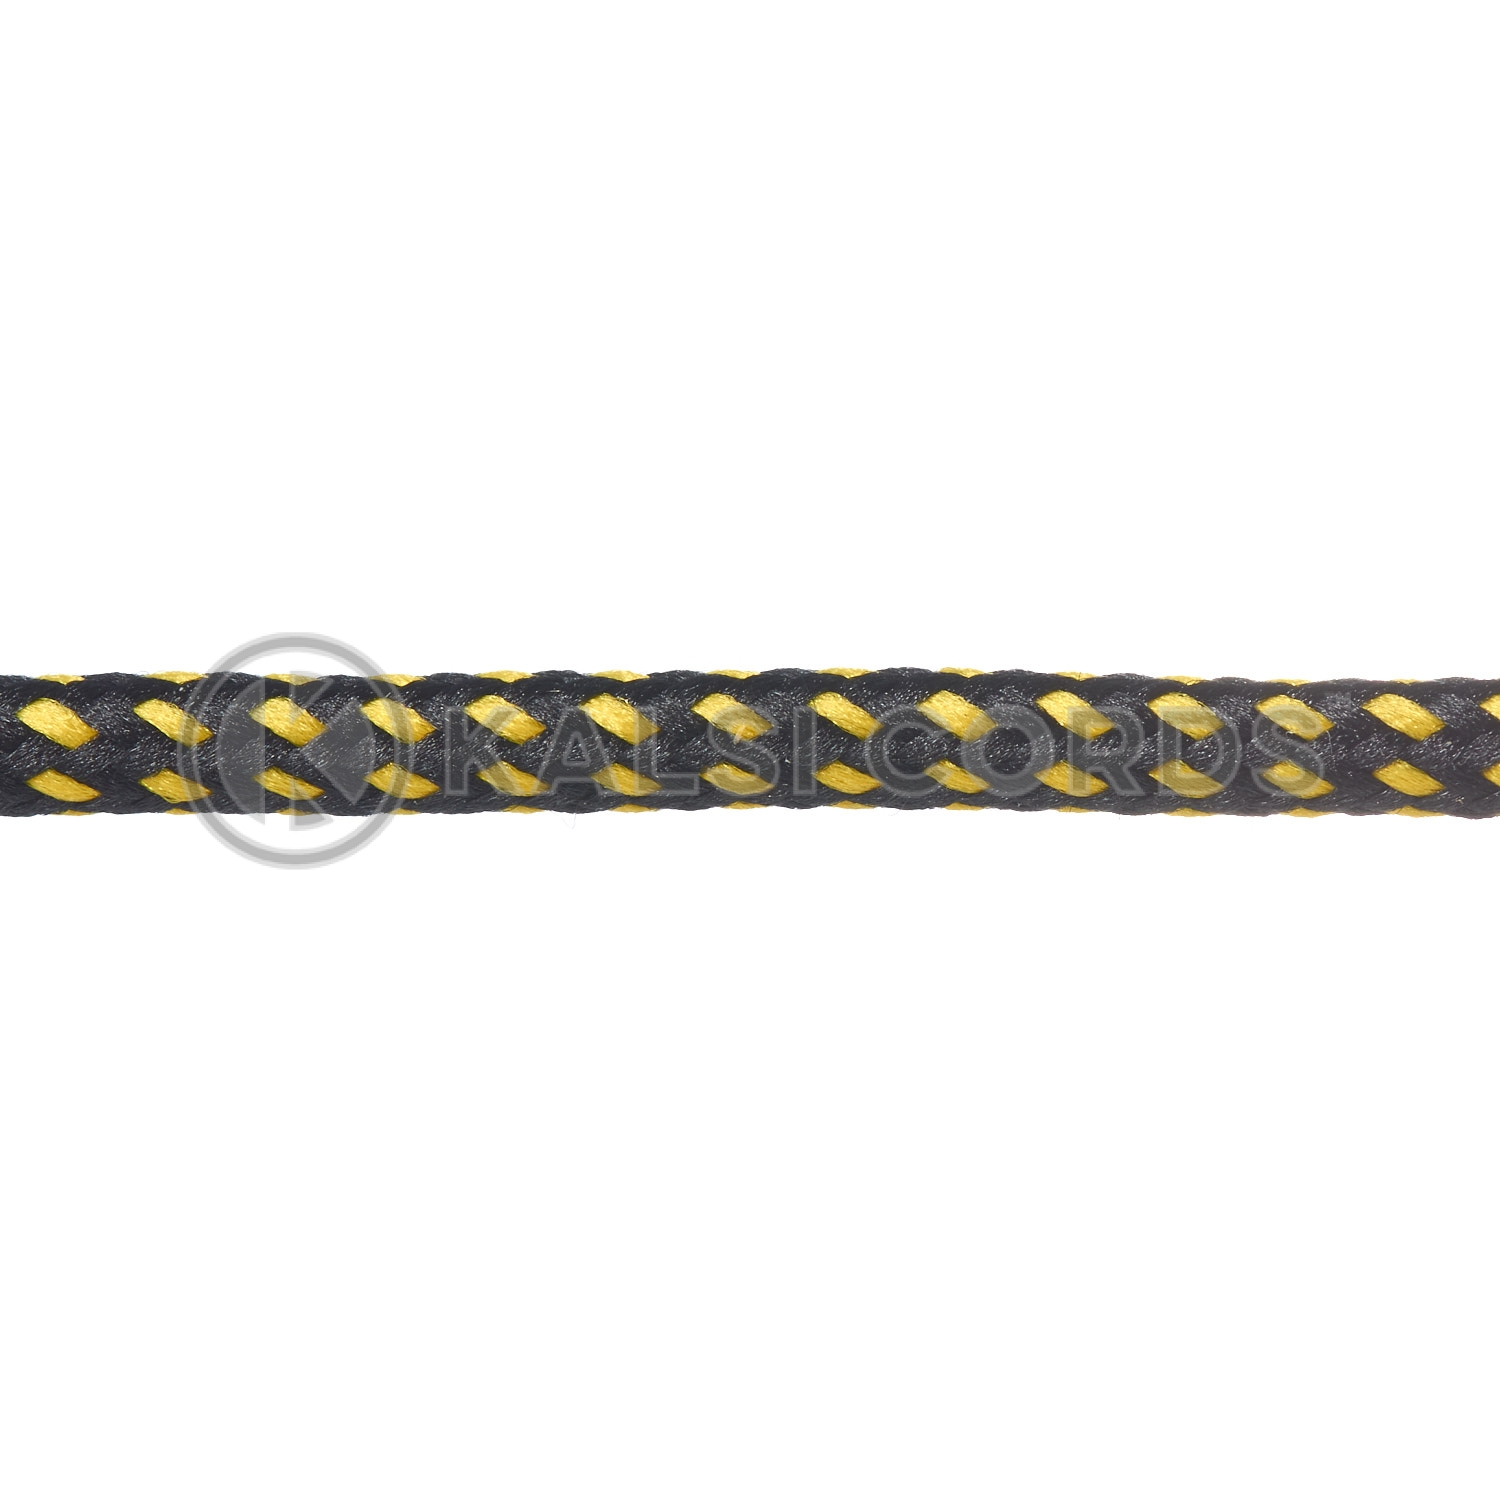 T621 5mm Round Cord Fleck Shoe Laces Black Yellow Kids Trainers Adults Hiking Walking Boots Kalsi Cords